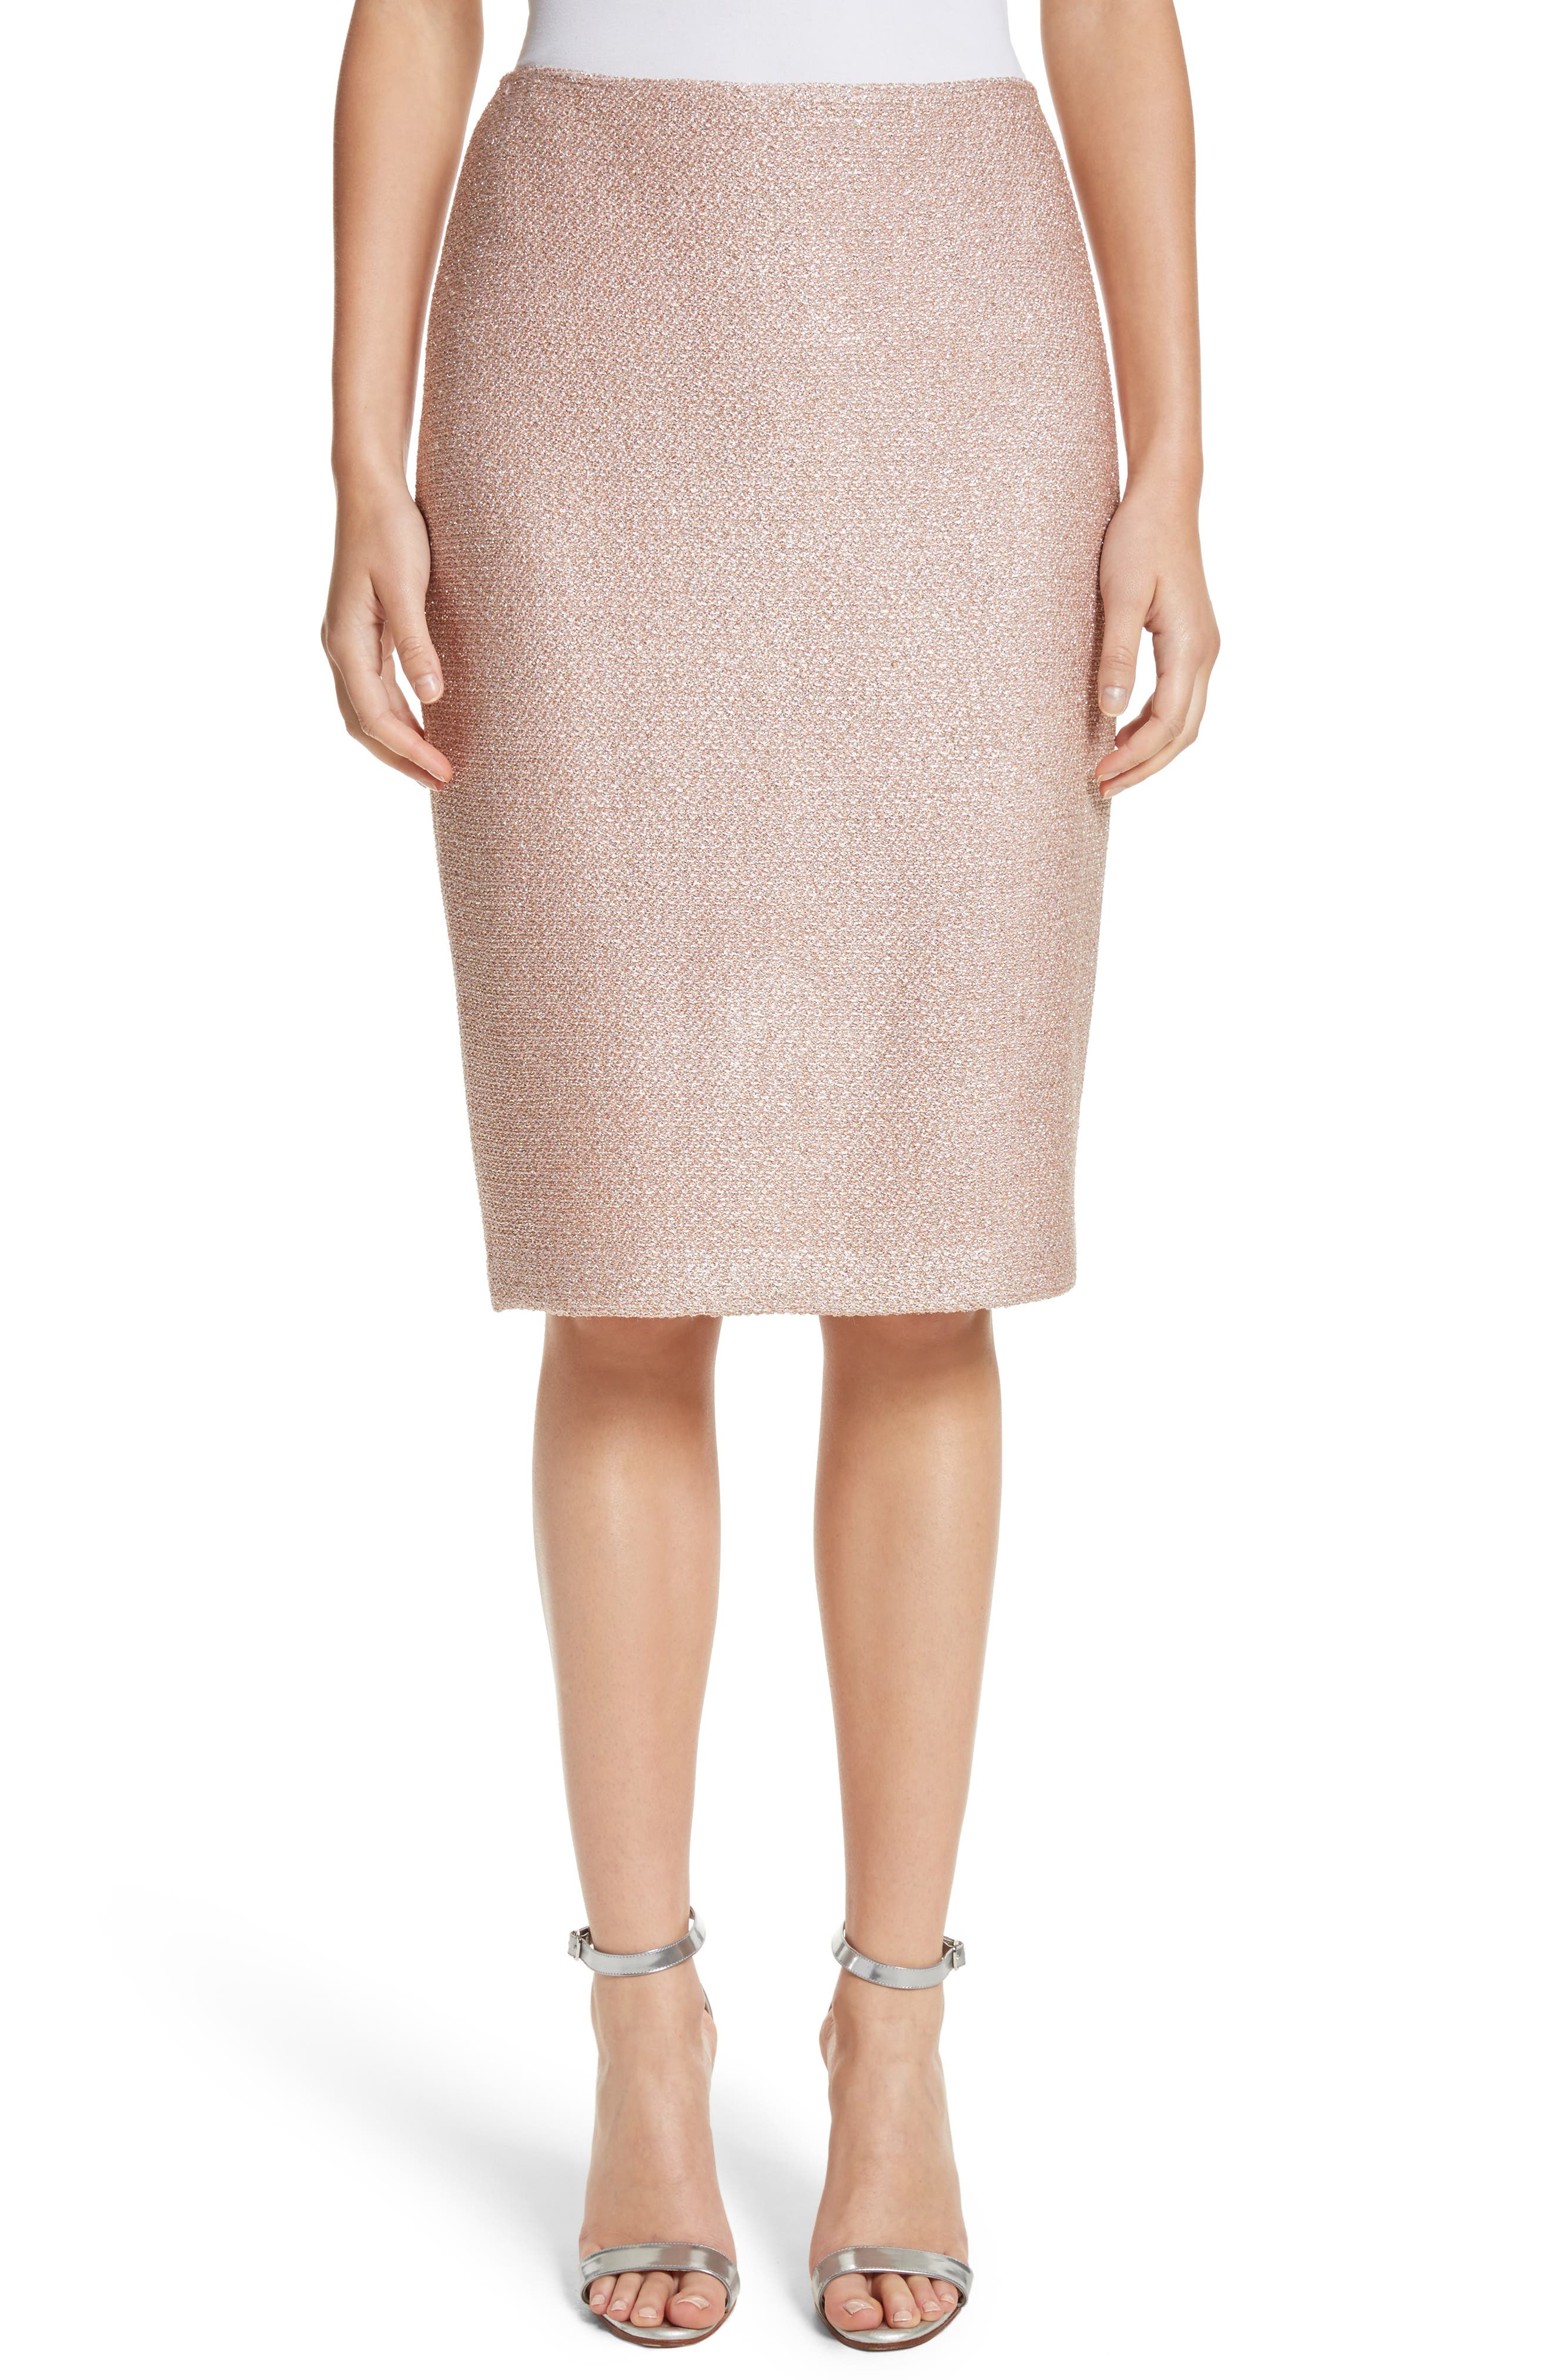 ST. JOHN COLLECTION,                             Frosted Metallic Knit Pencil Skirt,                             Main thumbnail 1, color,                             660